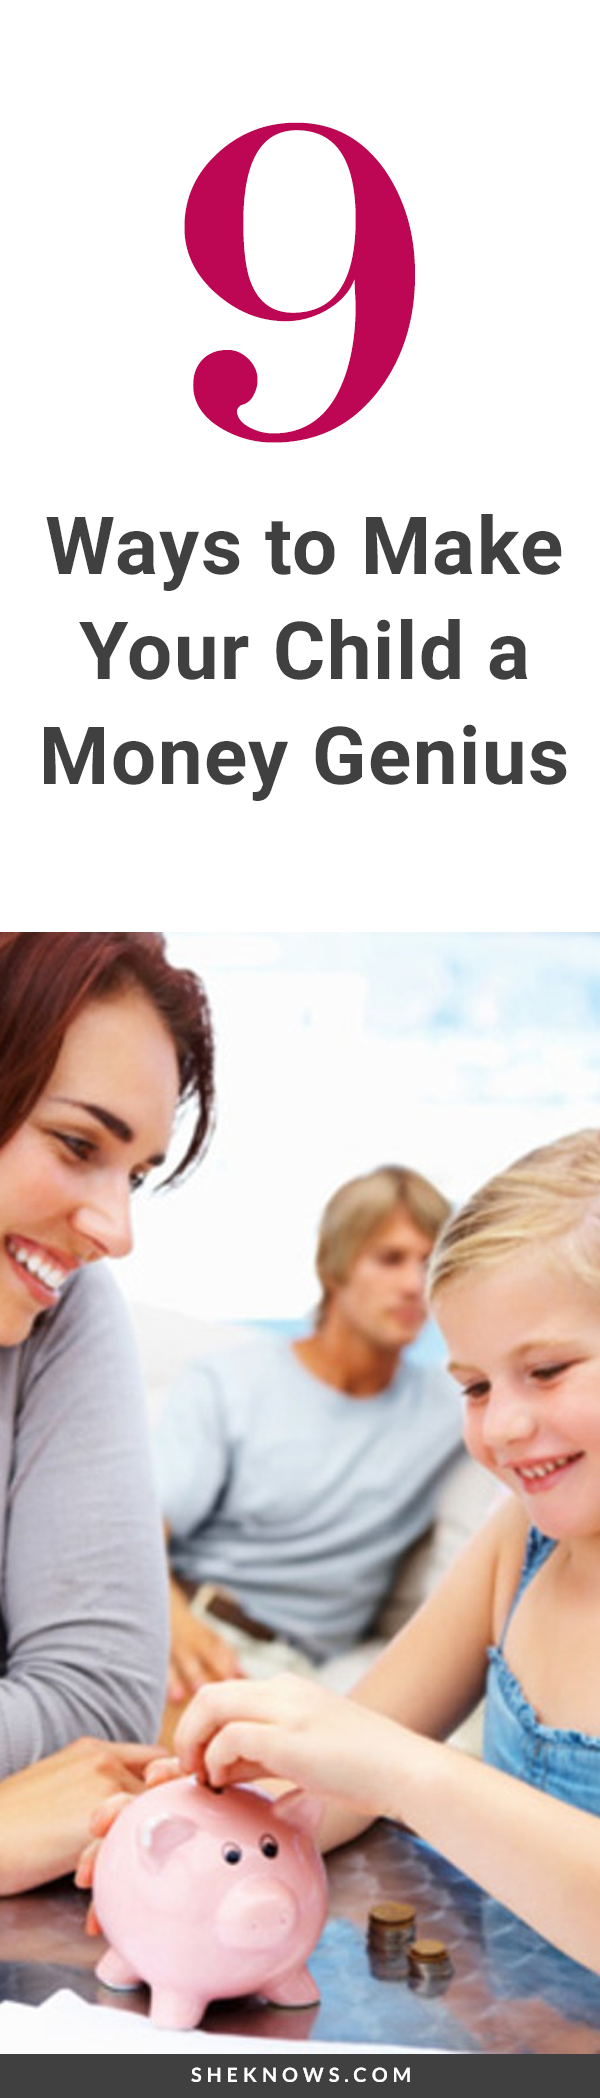 9 Ways to Make Your Child a Money Genius (Even If You're Not)